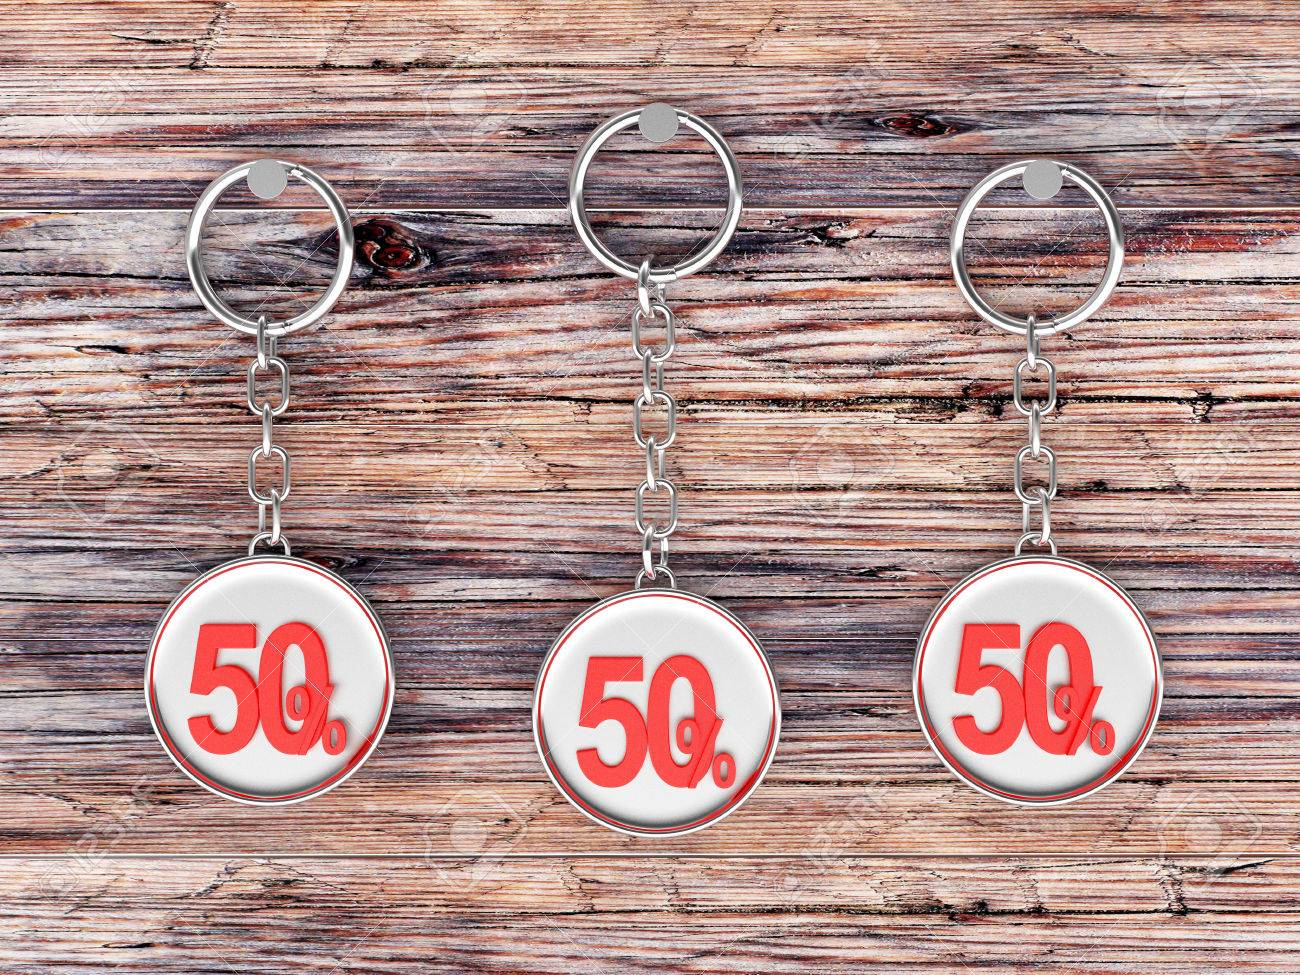 Illustration - Set of three silver keychains with red 50 percentage discount  on wooden background. 3D illustration 98797cf01682